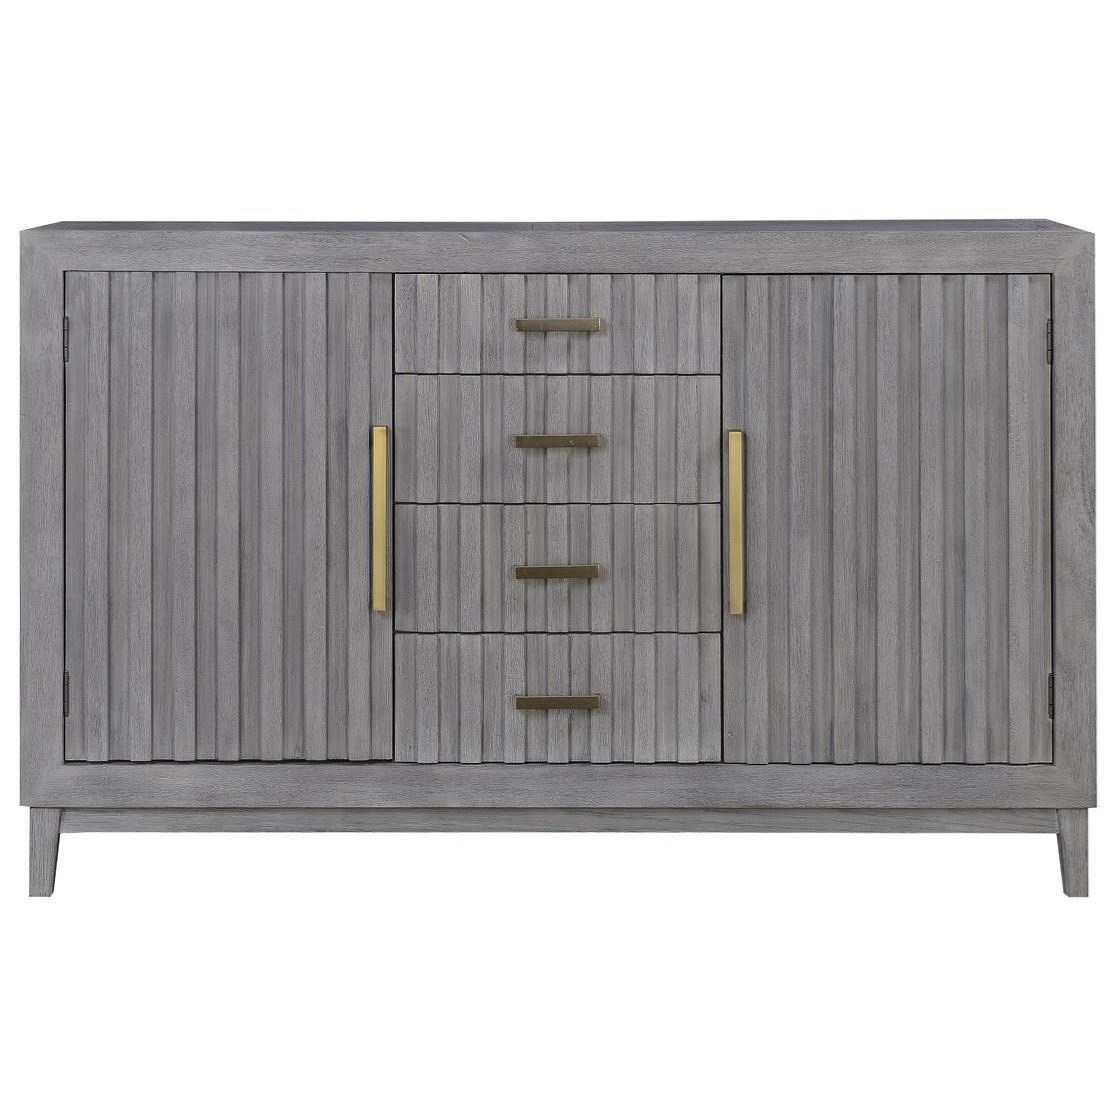 Carrera Server by Emerald at Northeast Factory Direct